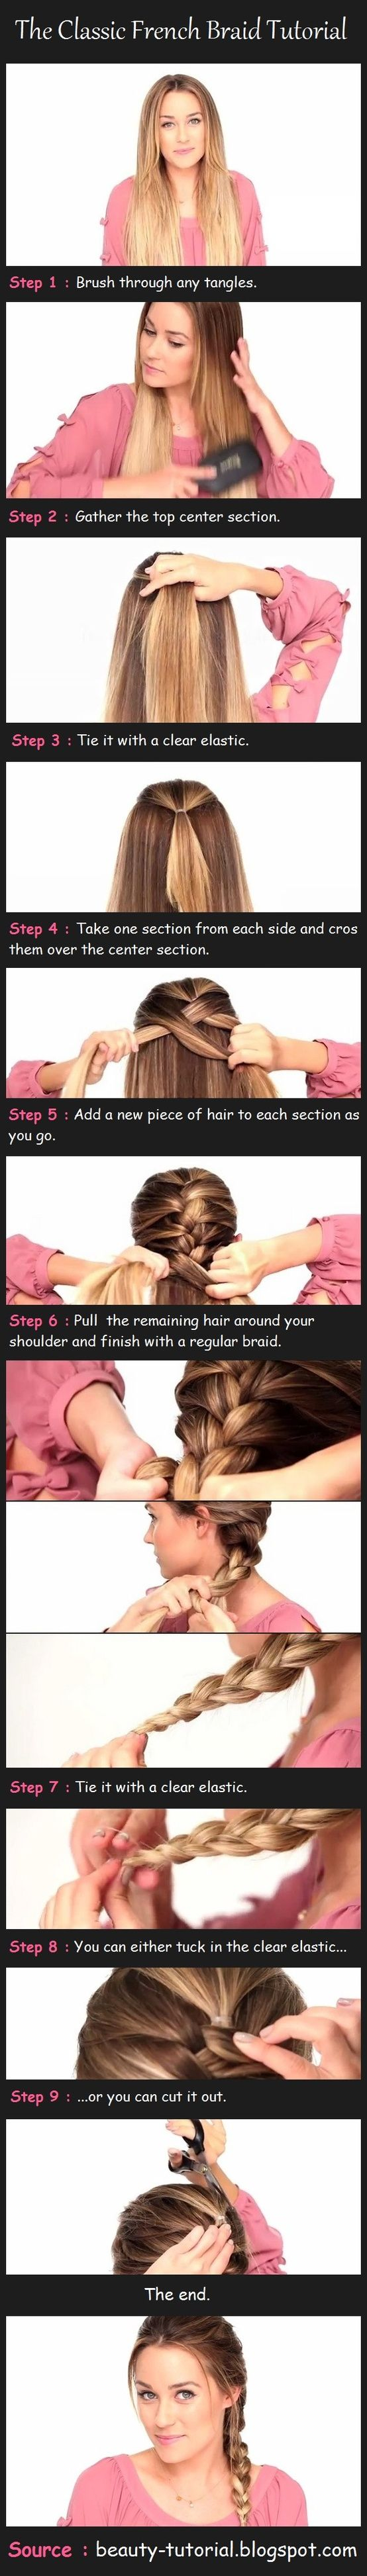 The Classic French Braid Tutorial | DIY Fashion and Health | Pinterest | Hair, Hair styles and French braid